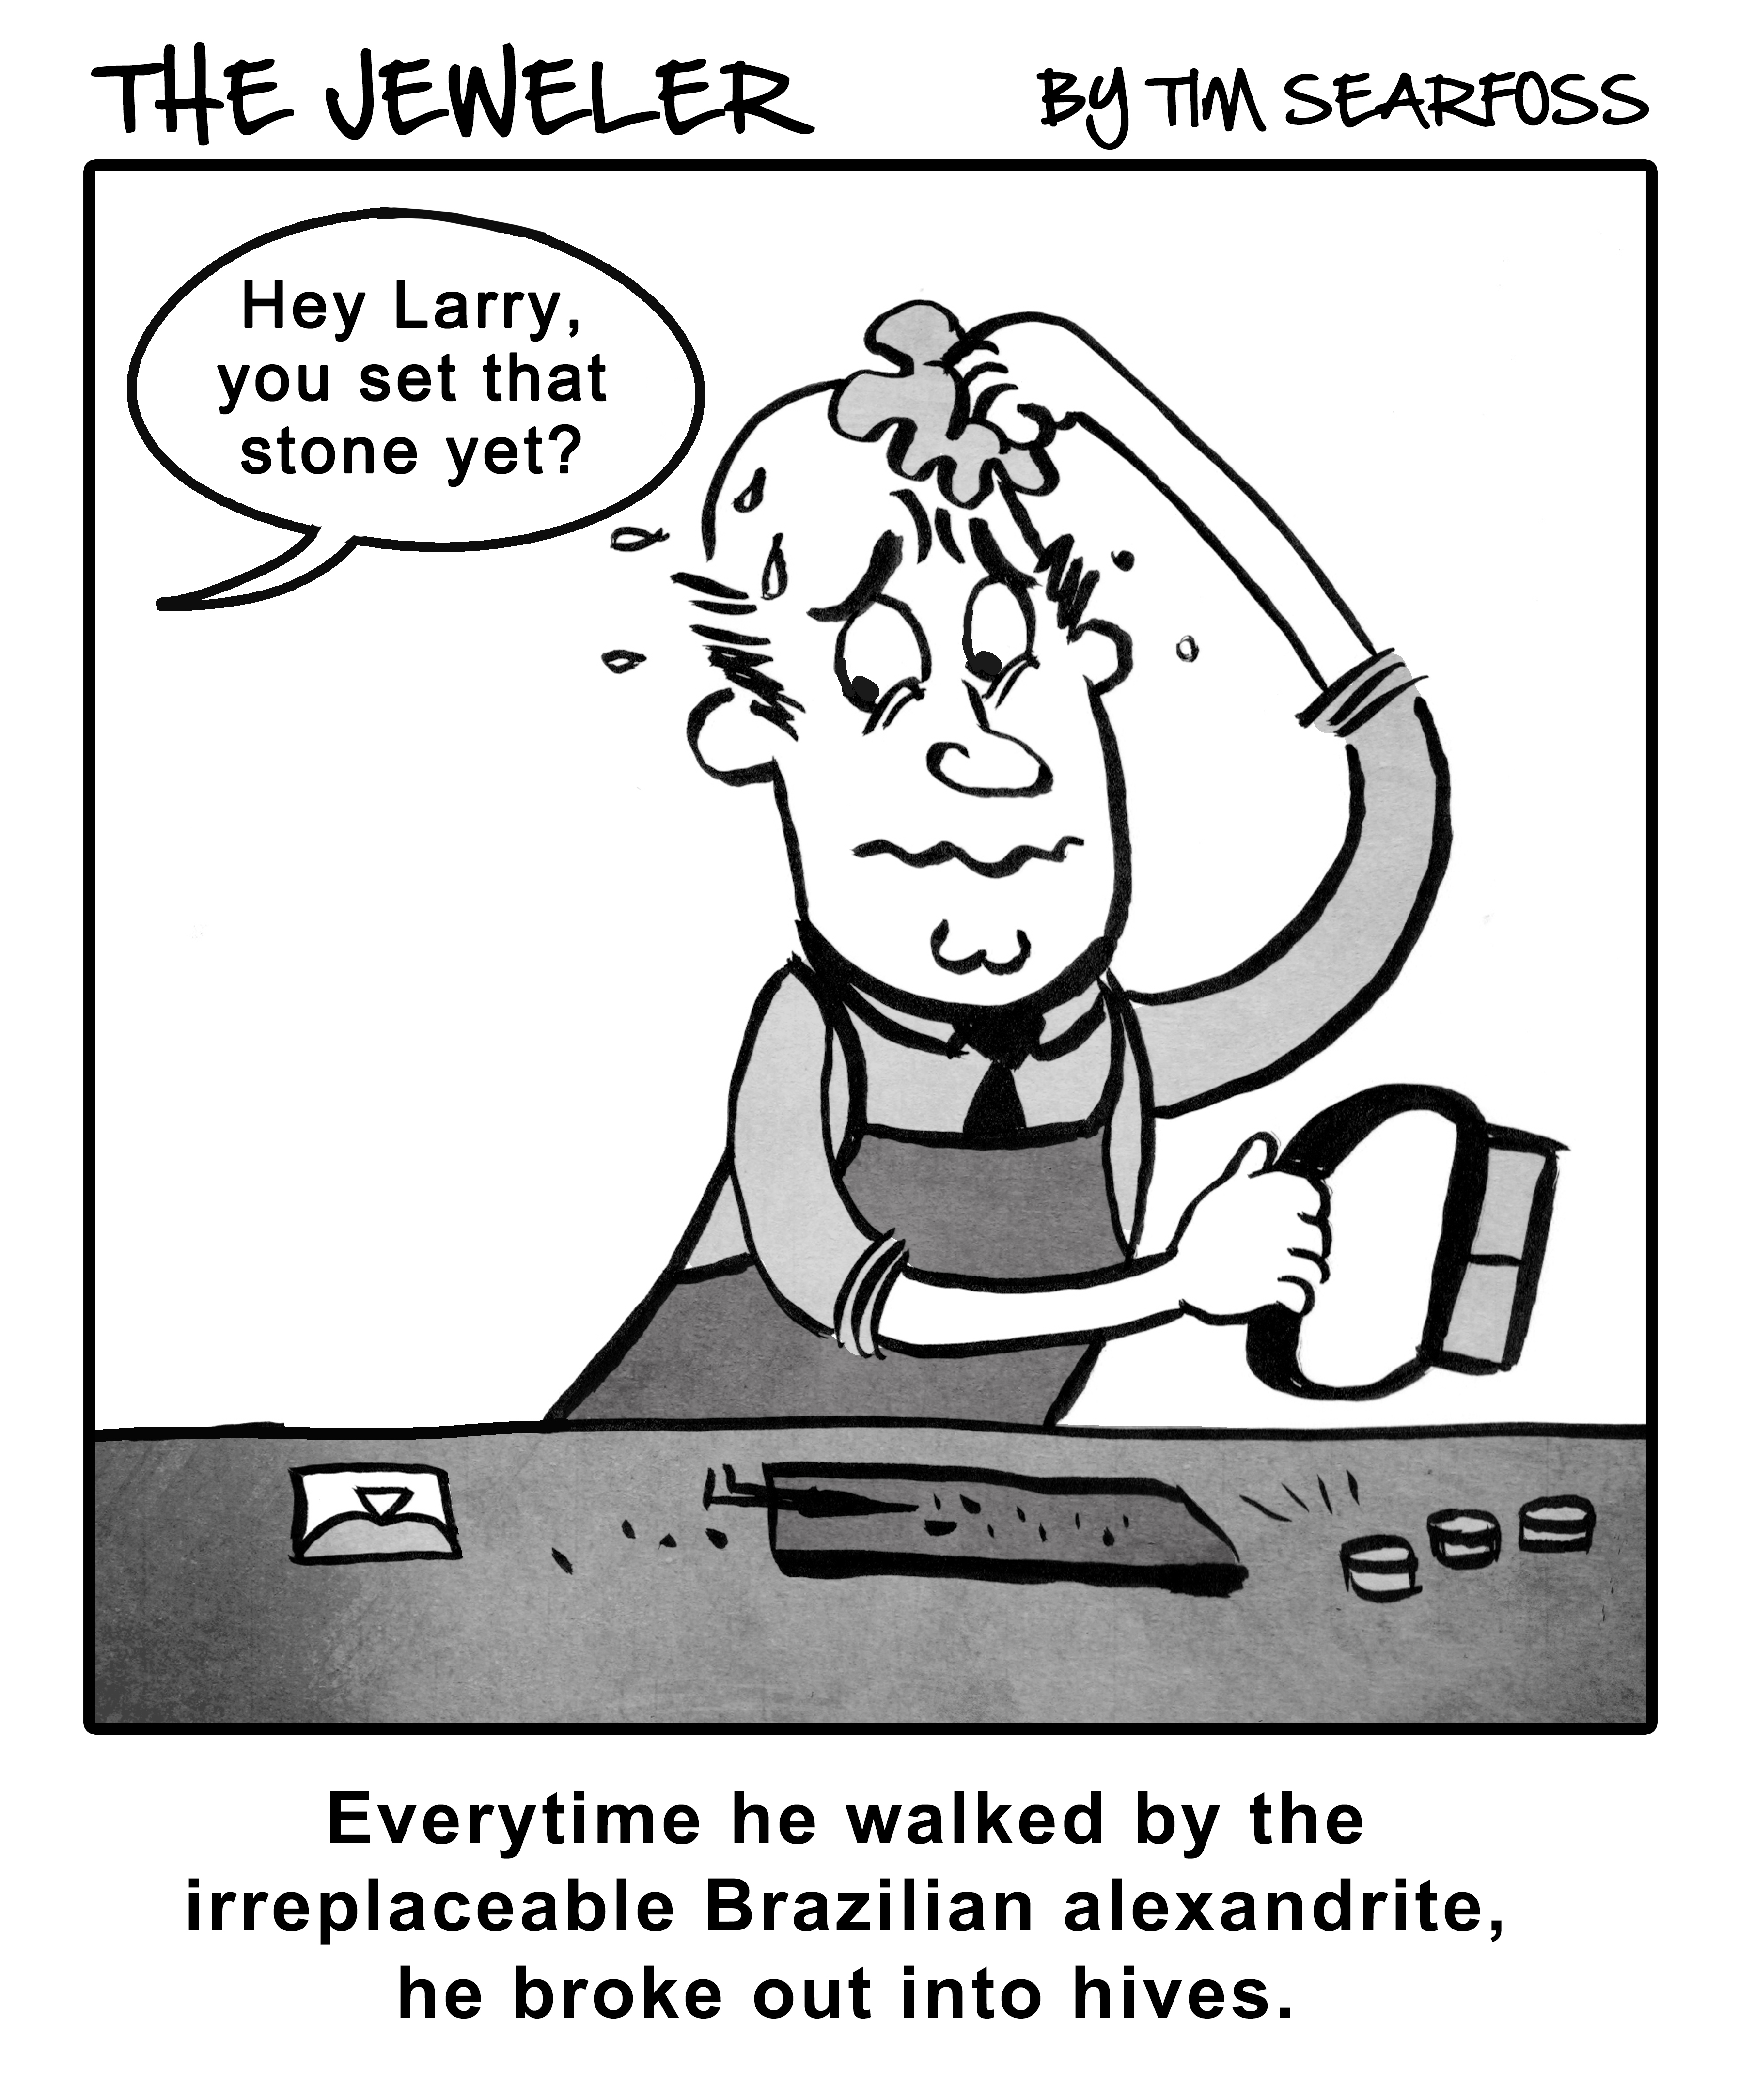 Cartoon: The Jeweler Gets Performance Anxiety